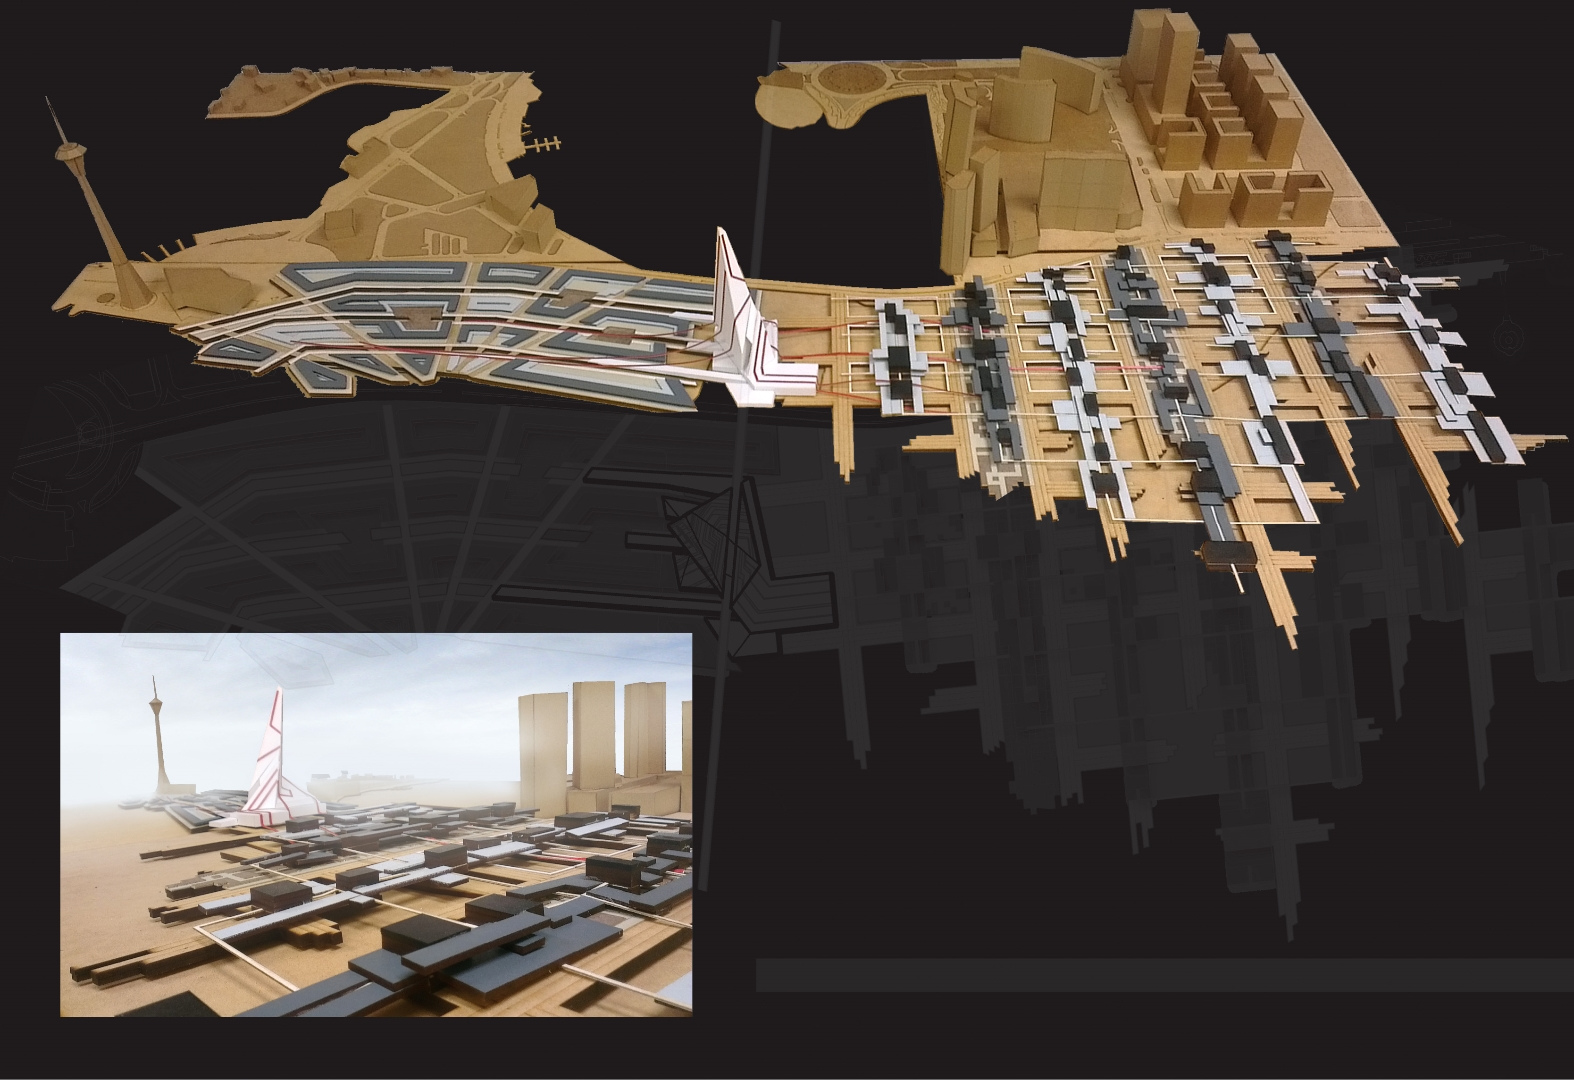 Enlarge Photo: The Possibility of an Island: Designing the New Macau Waterfront 7